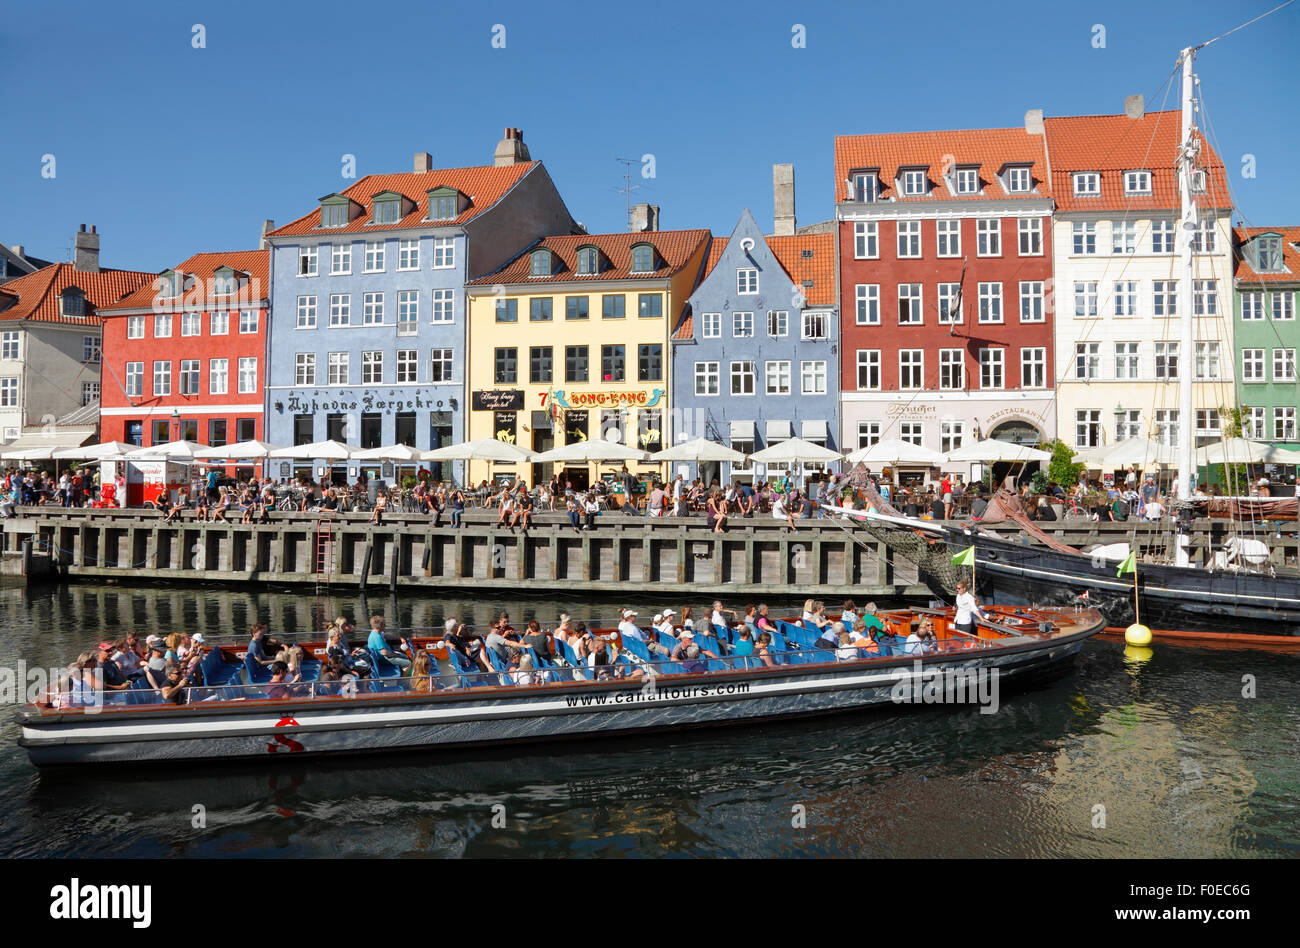 Canal tour boat turning around in crowded Nyhavn on a warm and sunny summer day full of tourists and visitors also Stock Photo